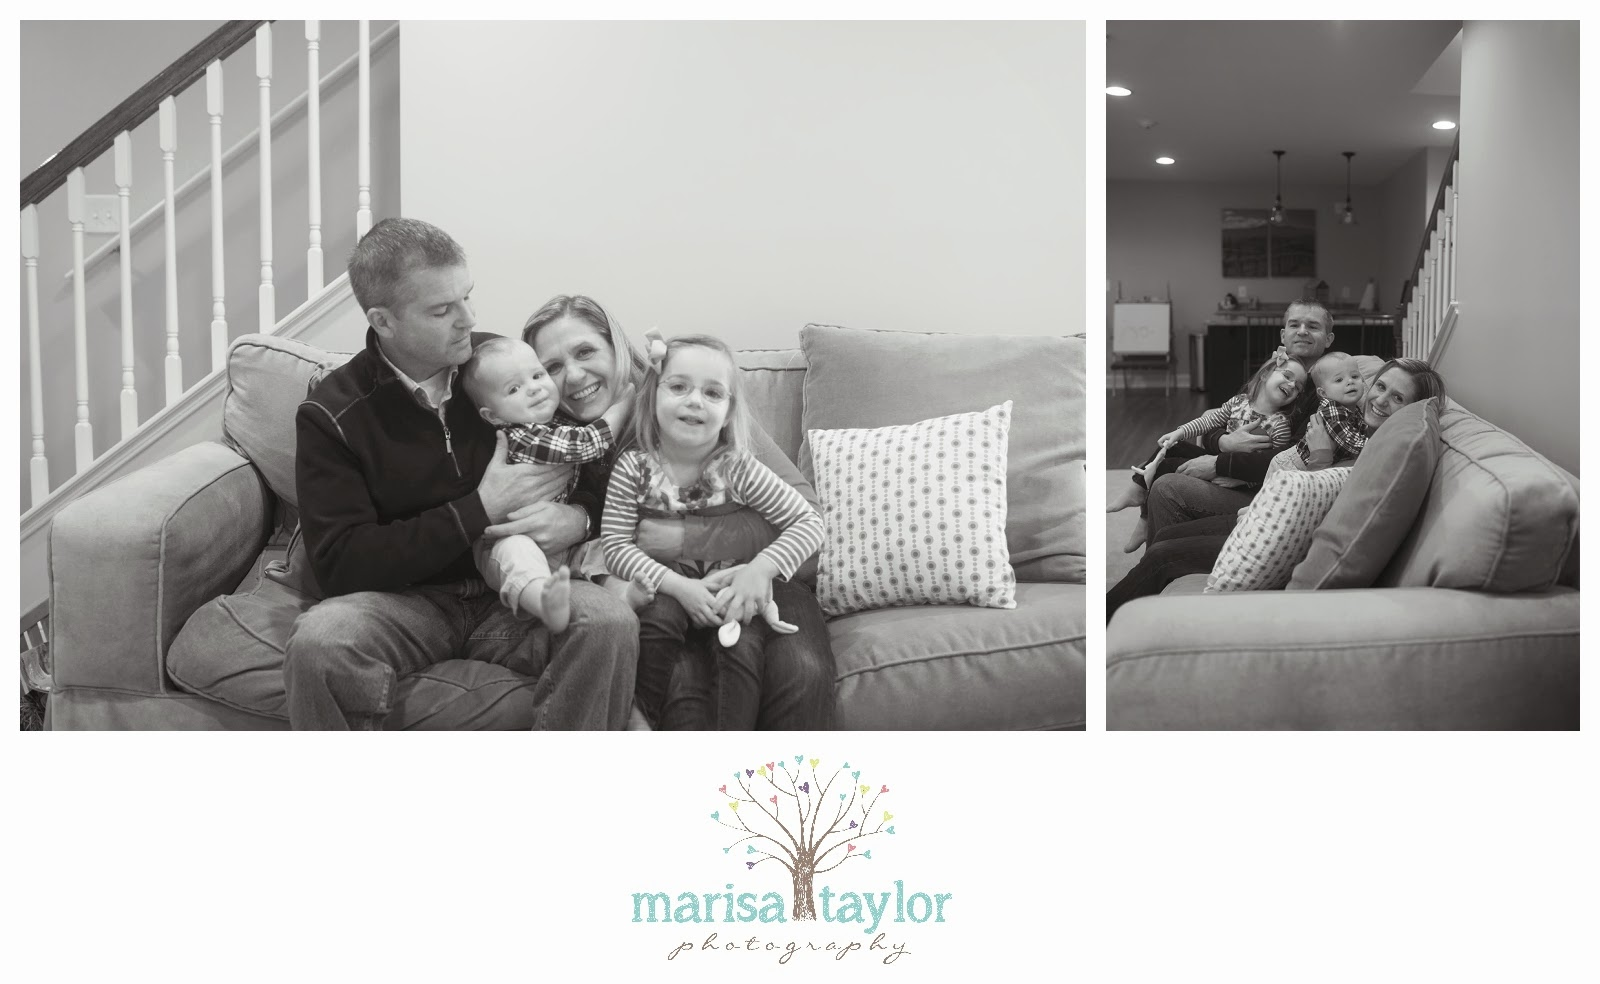 delaware family photographer, pennsylvania family photographer, delaware child photographer, pennsylvania child photographer, marisa taylor photography, lifestyle photographer, family photographer